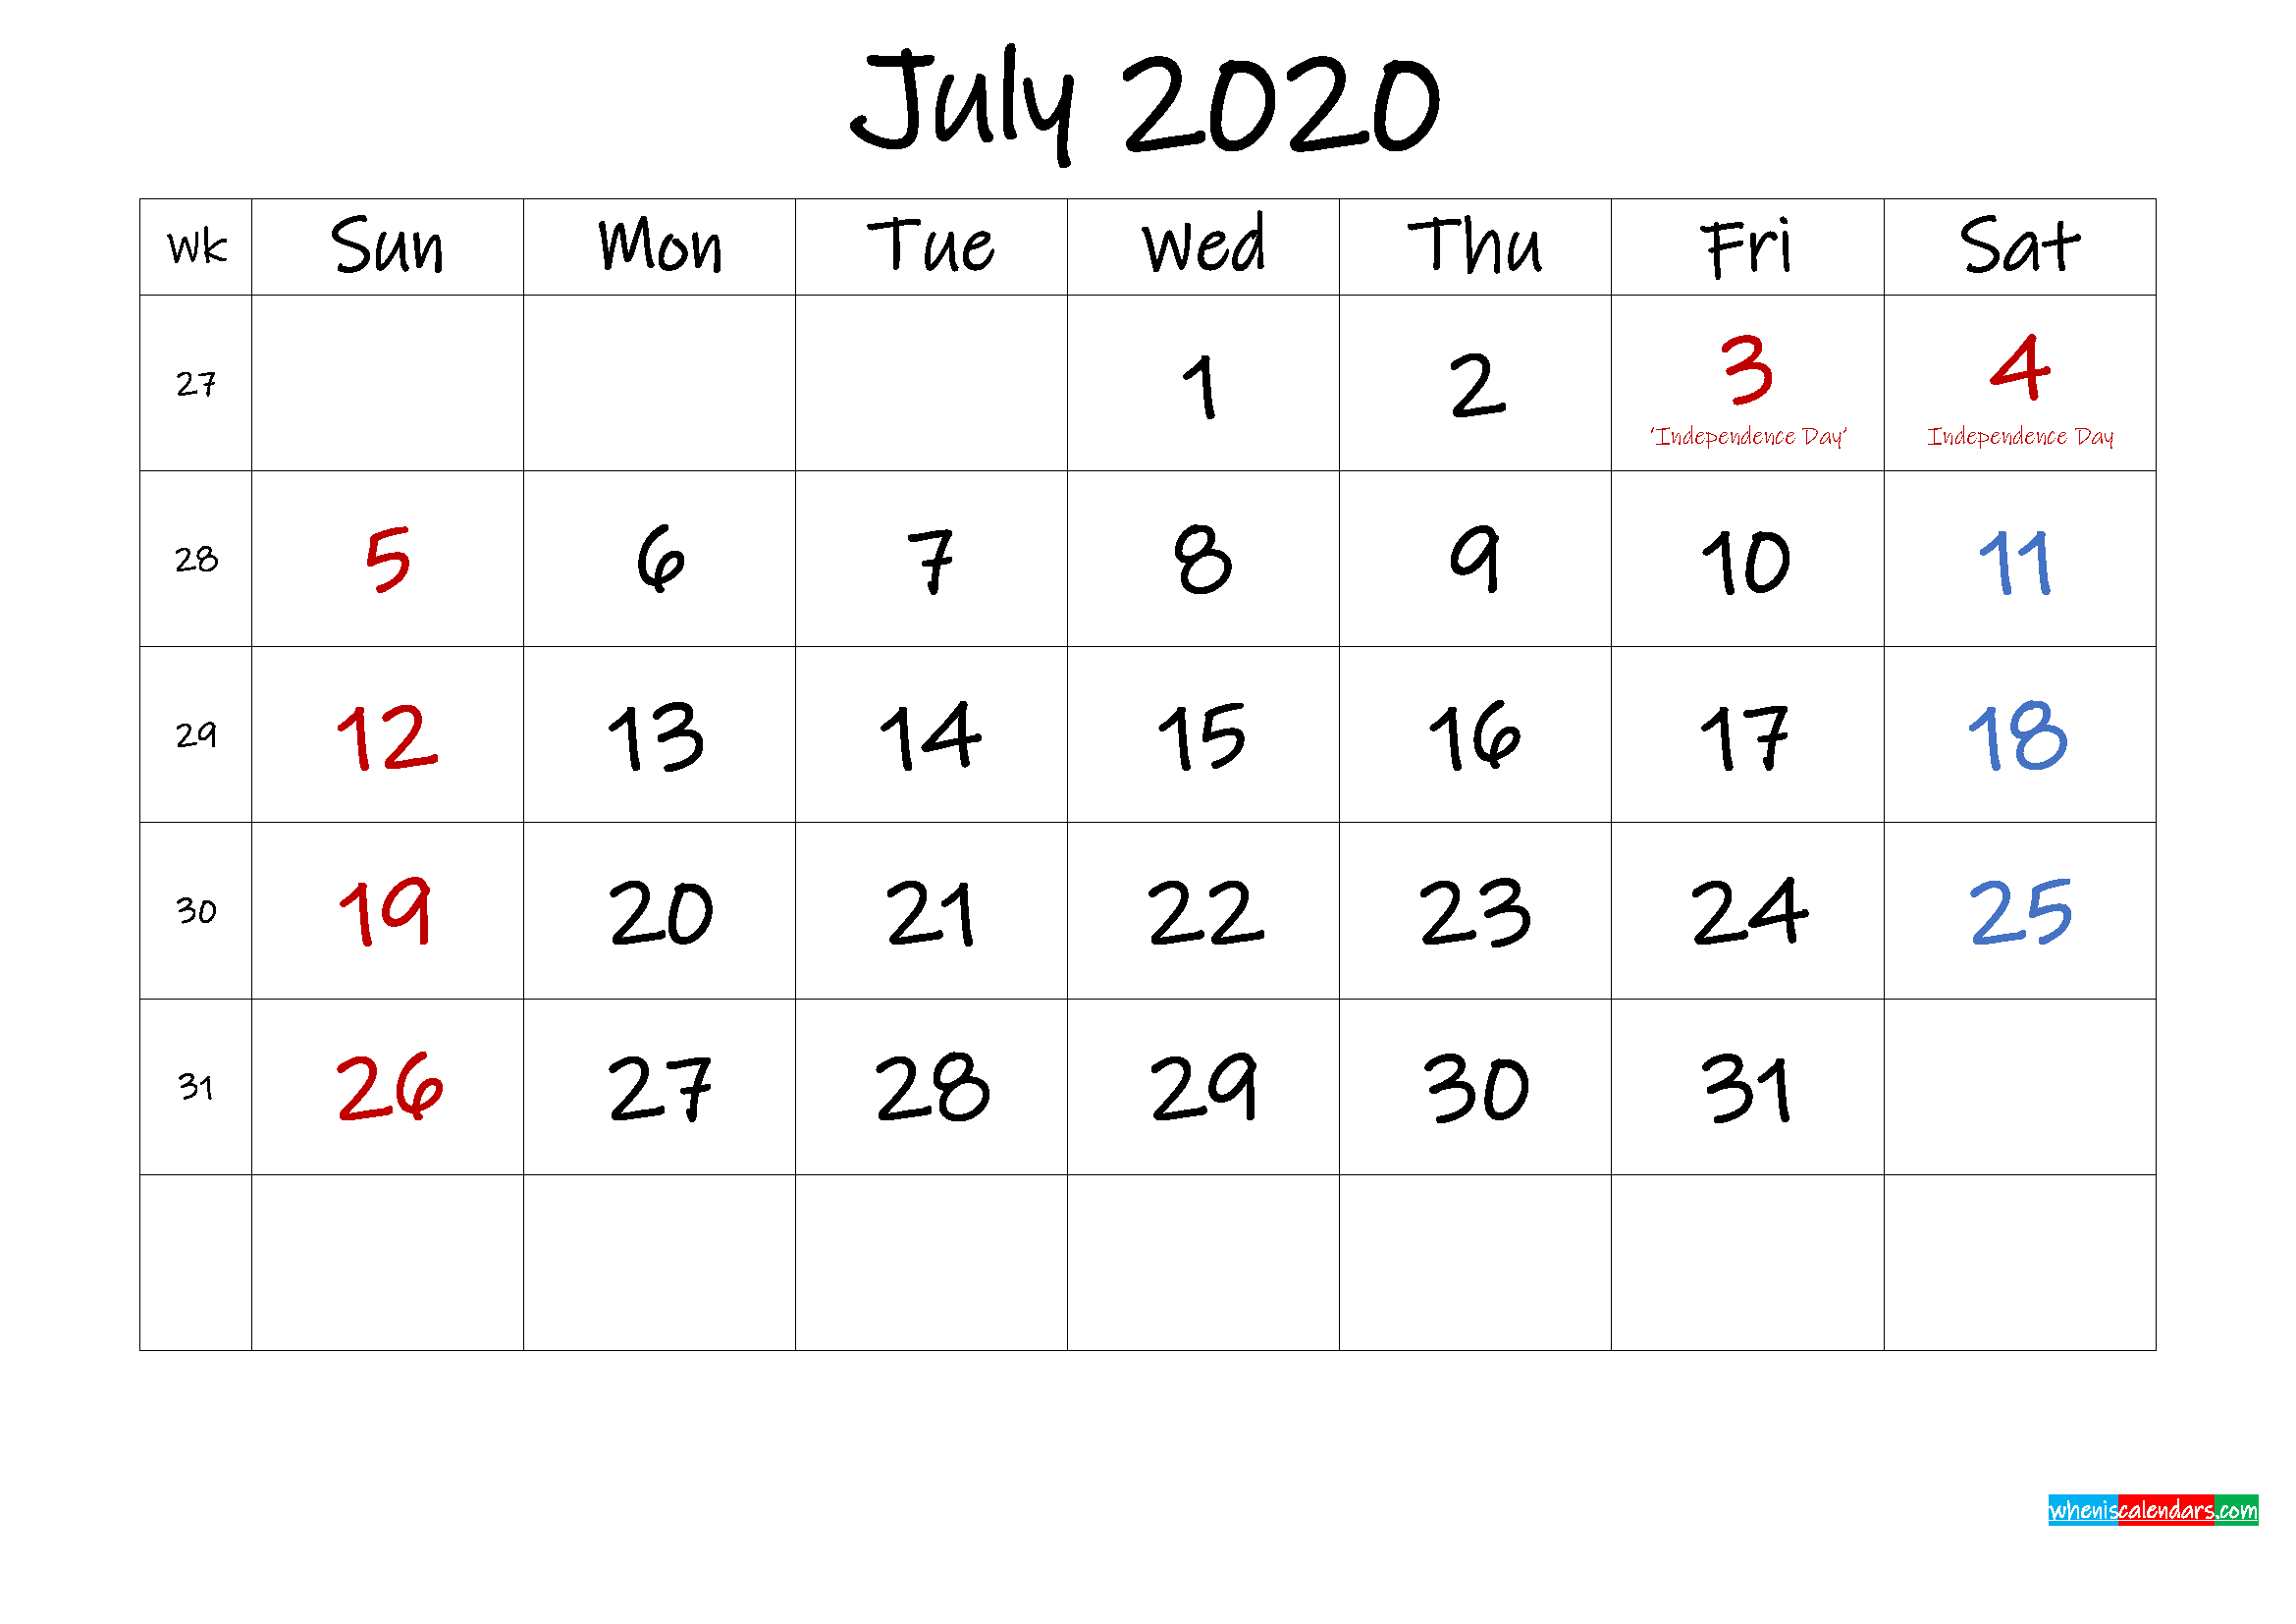 July 2020 Free Printable Calendar with Holidays